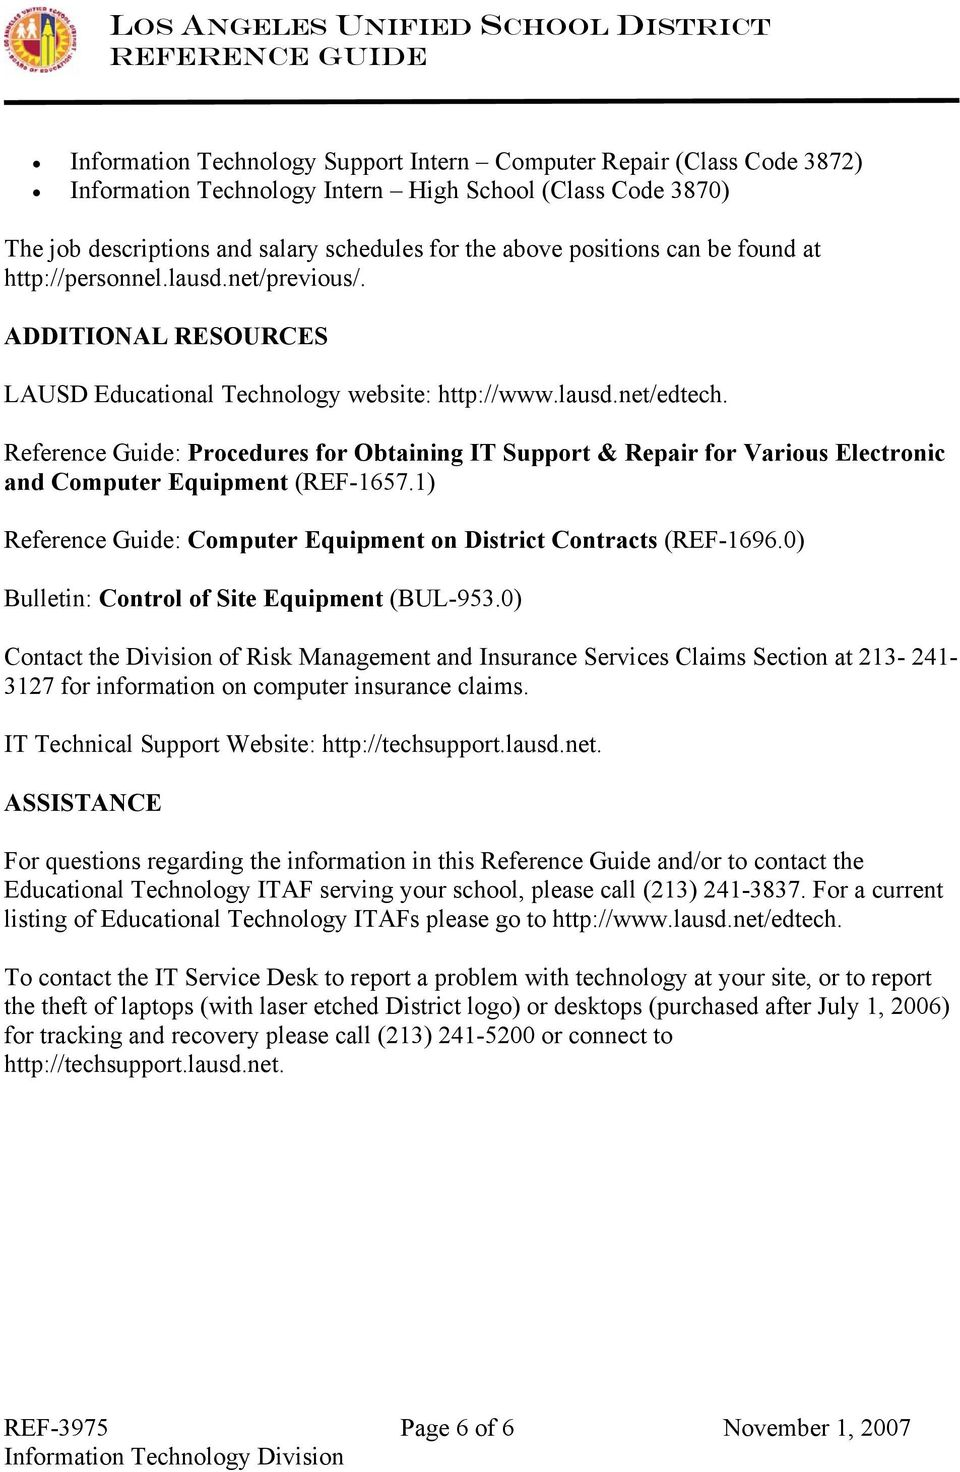 Reference Guide: Procedures for Obtaining IT Support & Repair for Various Electronic and Computer Equipment (REF-1657.1) Reference Guide: Computer Equipment on District Contracts (REF-1696.